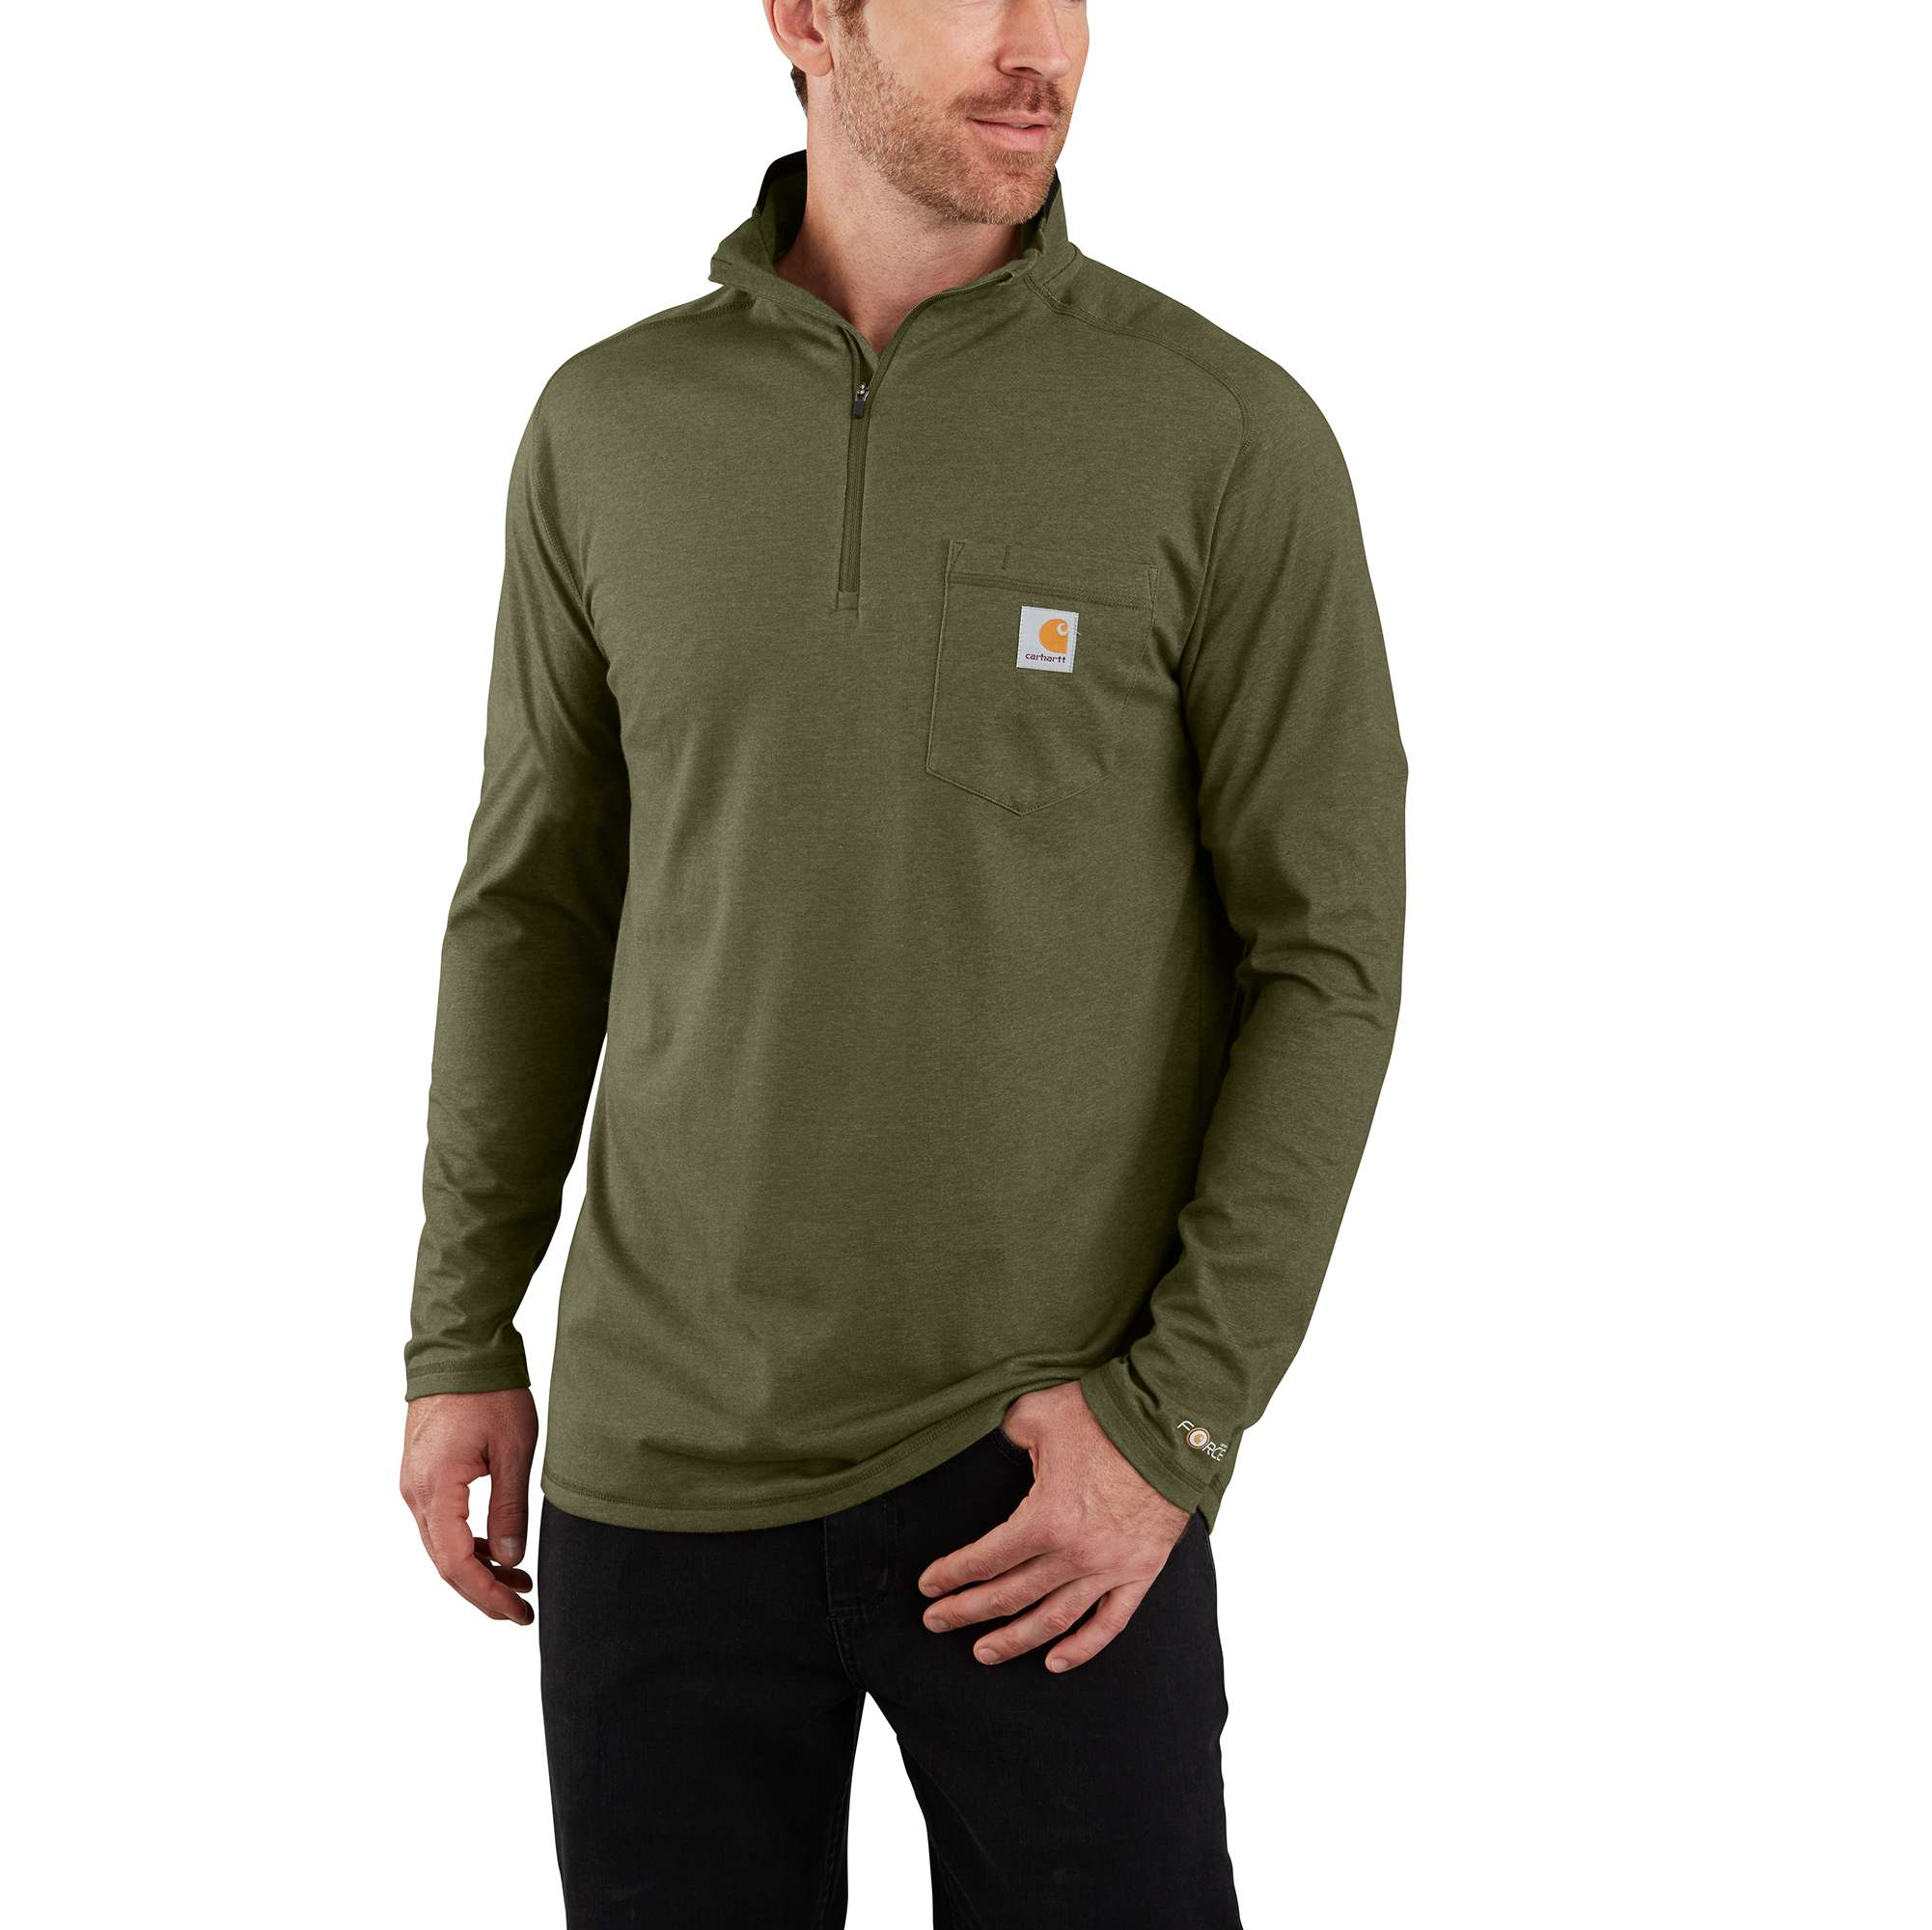 Carhartt Force Relaxed Fit Long-Sleeve Quarter-Zip Pocket T-Shirt